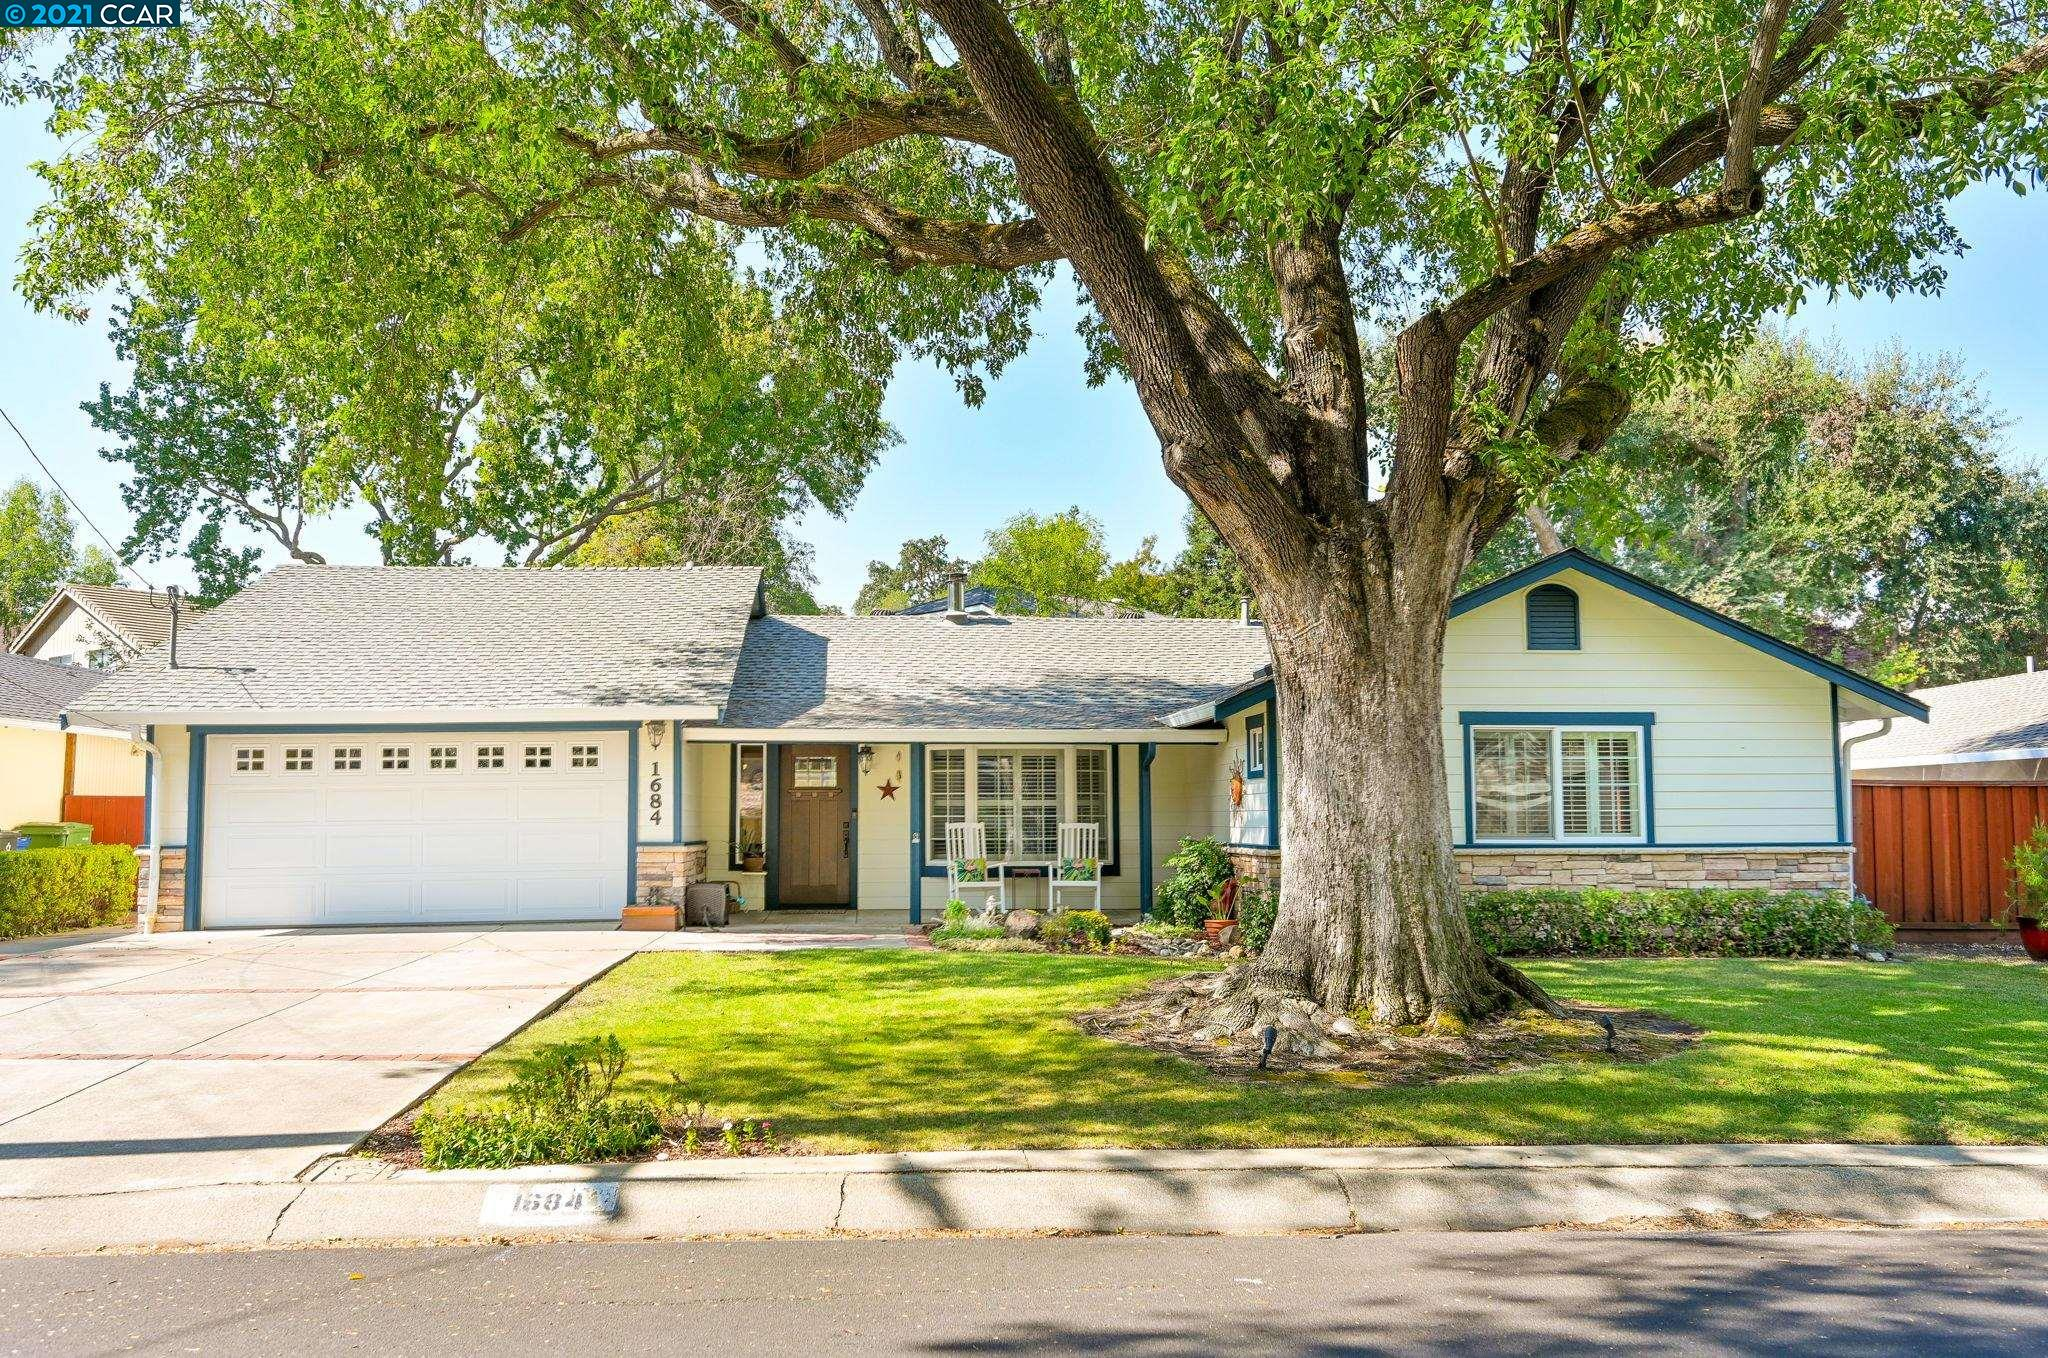 Beautifully updated and meticulously maintained rancher in Gregory Gardens. Nestled just a few blocks from Distinguished Elementary, Middle, and High Schools and centrally located for easy commute in all directions. Quiet tree-lined street, close to bike paths and a nice walk to downtown. Sunlight drenched front room through Plantation shutters and a wood-burning stove. Hardwood flooring and eco-friendly ceiling fans through most of the house. Updated kitchen has solid-surface countertops and modern, green-friendly stainless steel electric range with convection self-cleaning oven and separate built-in microwave opening to dining area. Bonus room through barn door leads to workout/ rumpus room (not included in sq ft). MBR Suite and Bath with solid surface cabinet tops and tile flooring while Hall bath has shower over tub. Attached garage features plenty of storage in cabinets and overhead. Come see your future home on one of the nicest streets in Pleasant Hill!